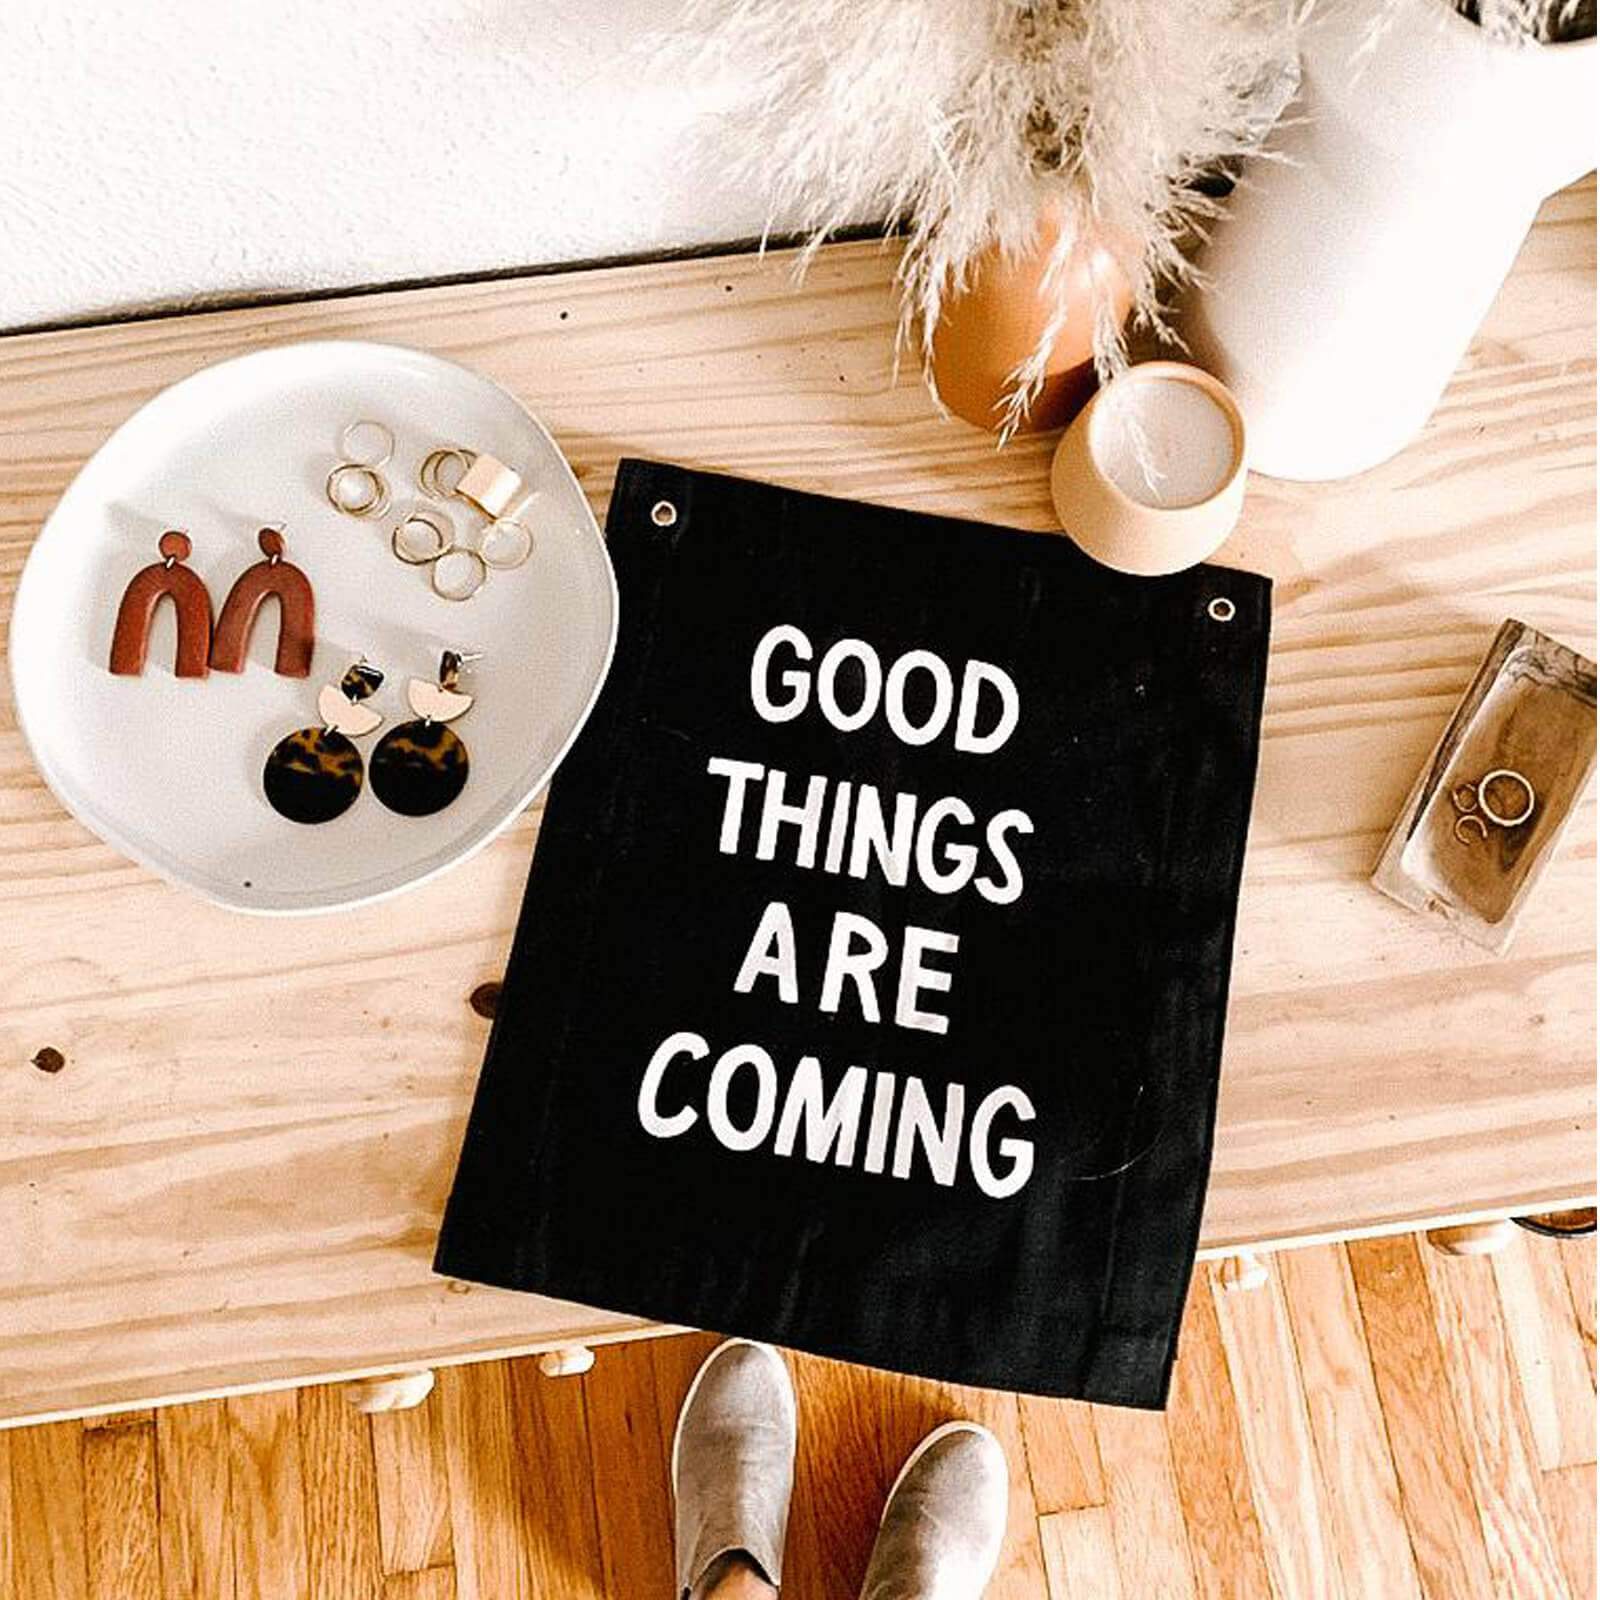 Good Things are Coming Banner, Black and White